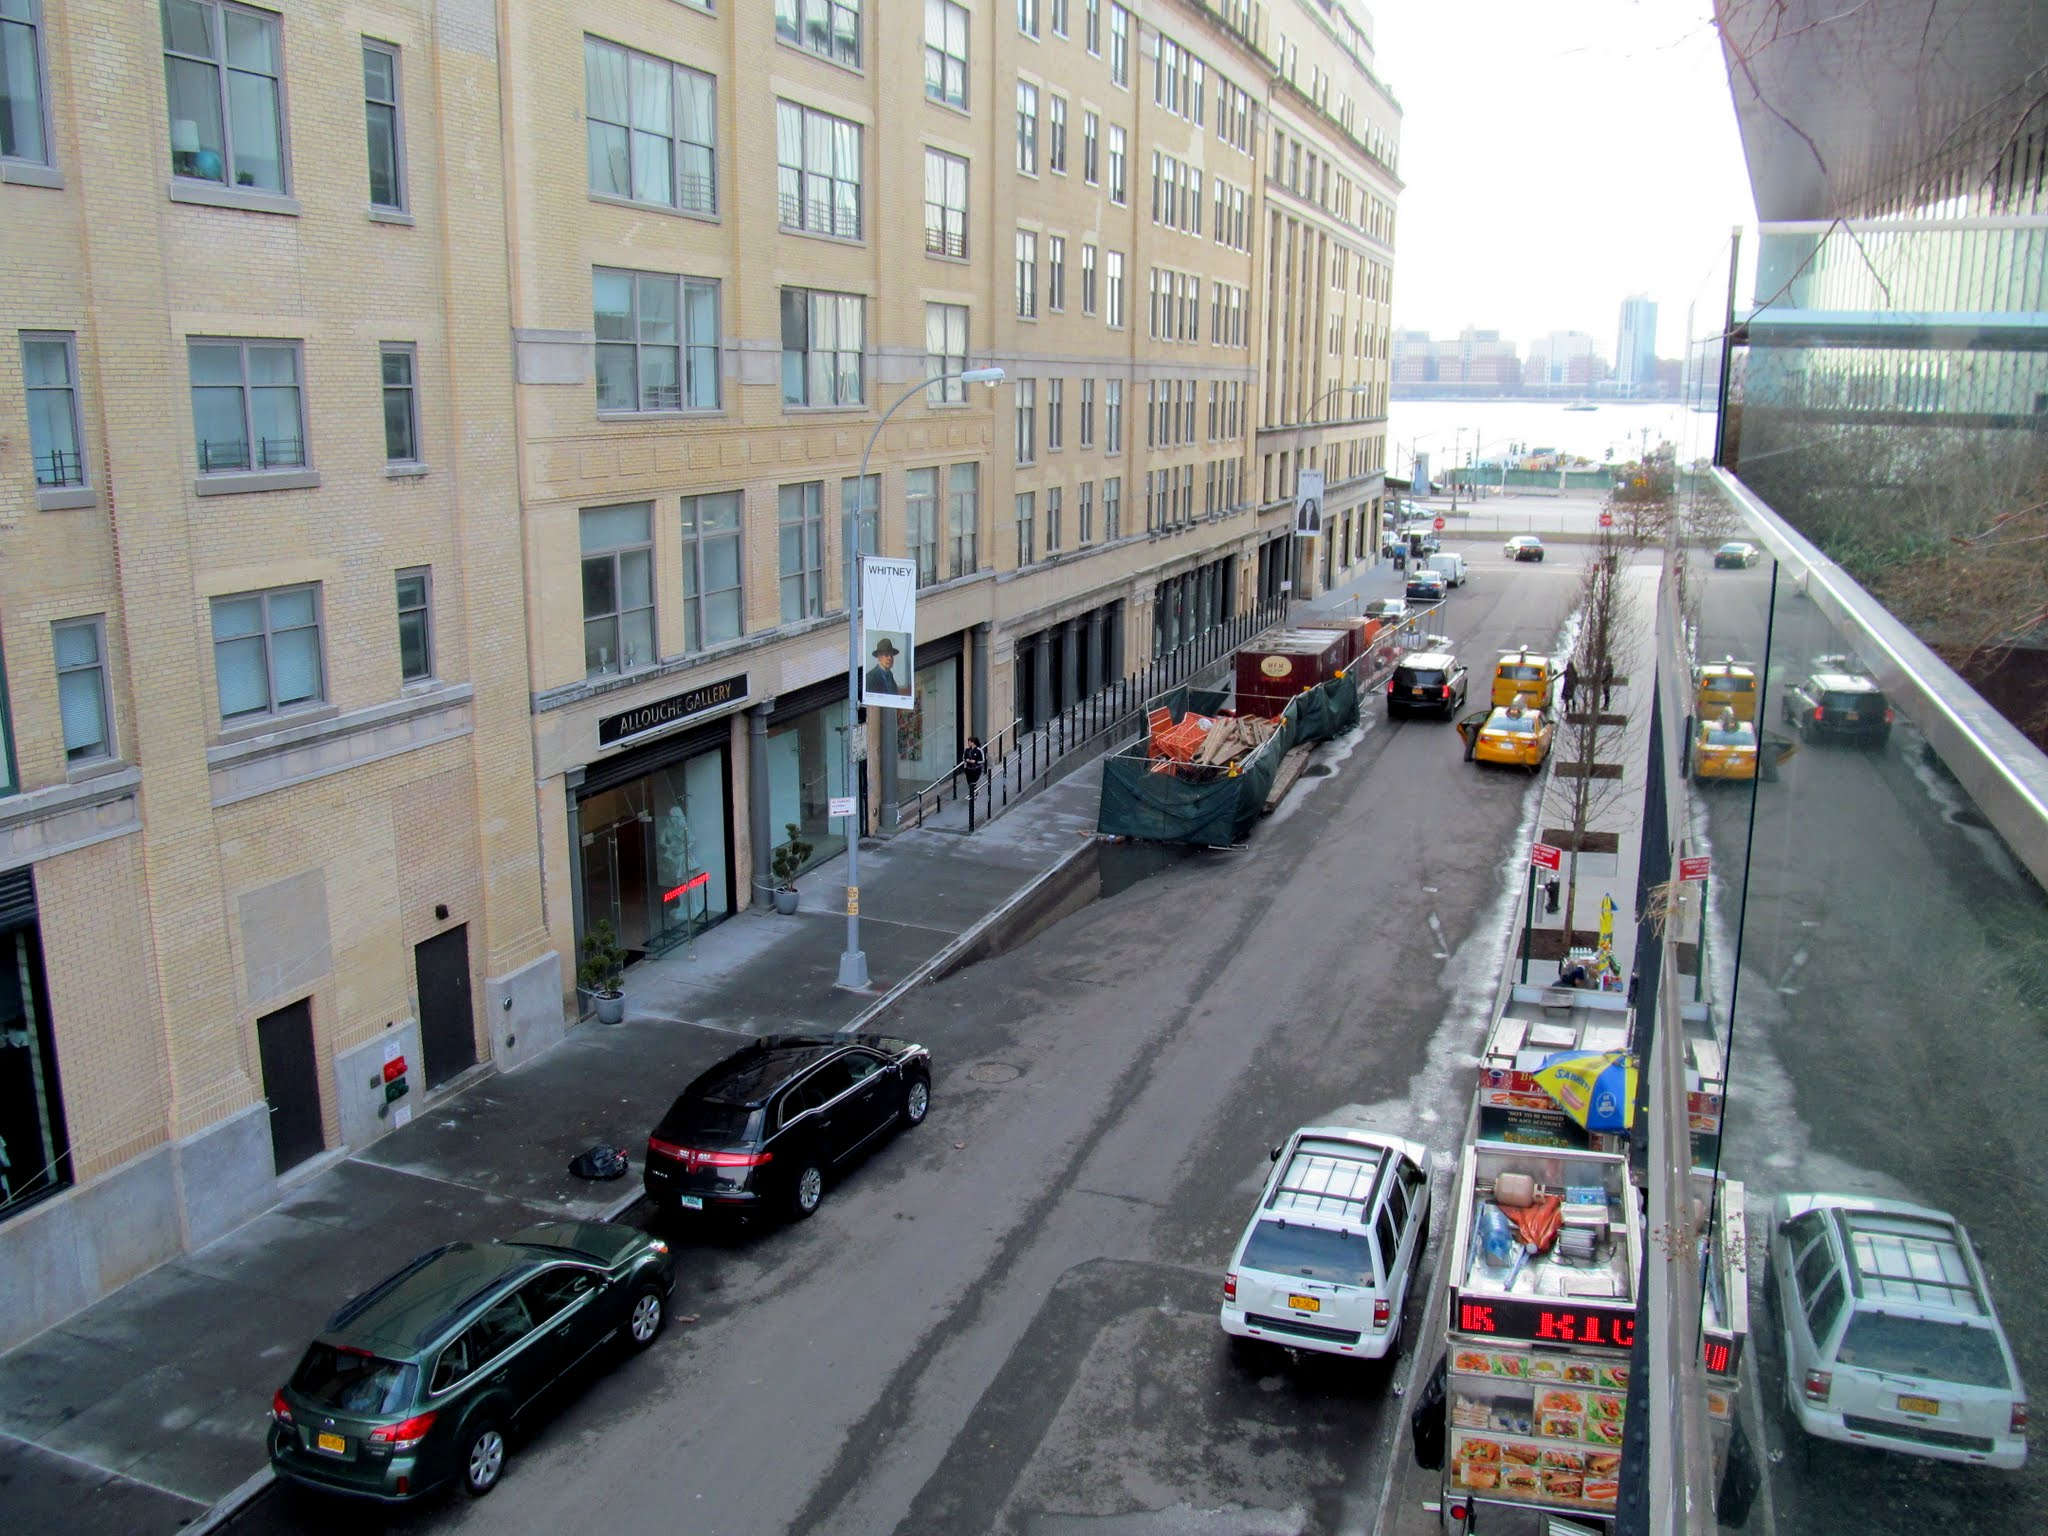 Photo: Gansevoort Street at the south end of the High Line